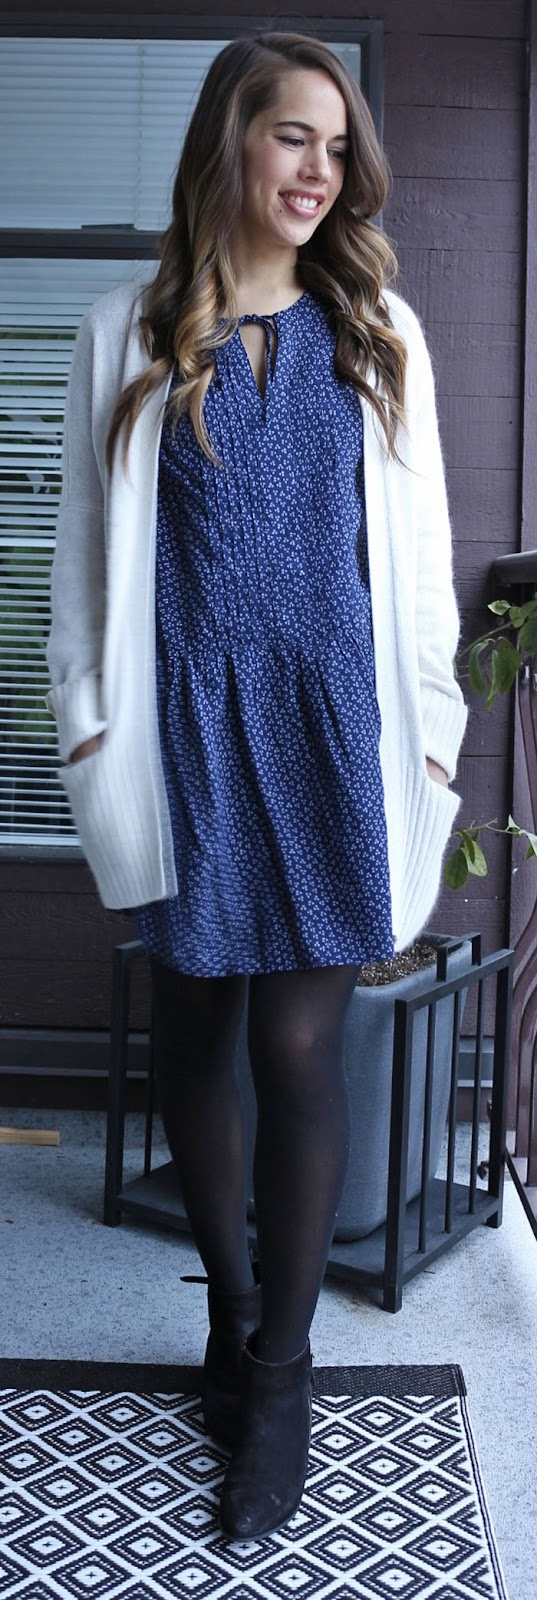 Jules in Flats - Talula Lenox Cardigan, Old Navy Pleated Tie-Neck Dress, Steve Madden Jaydun Booties